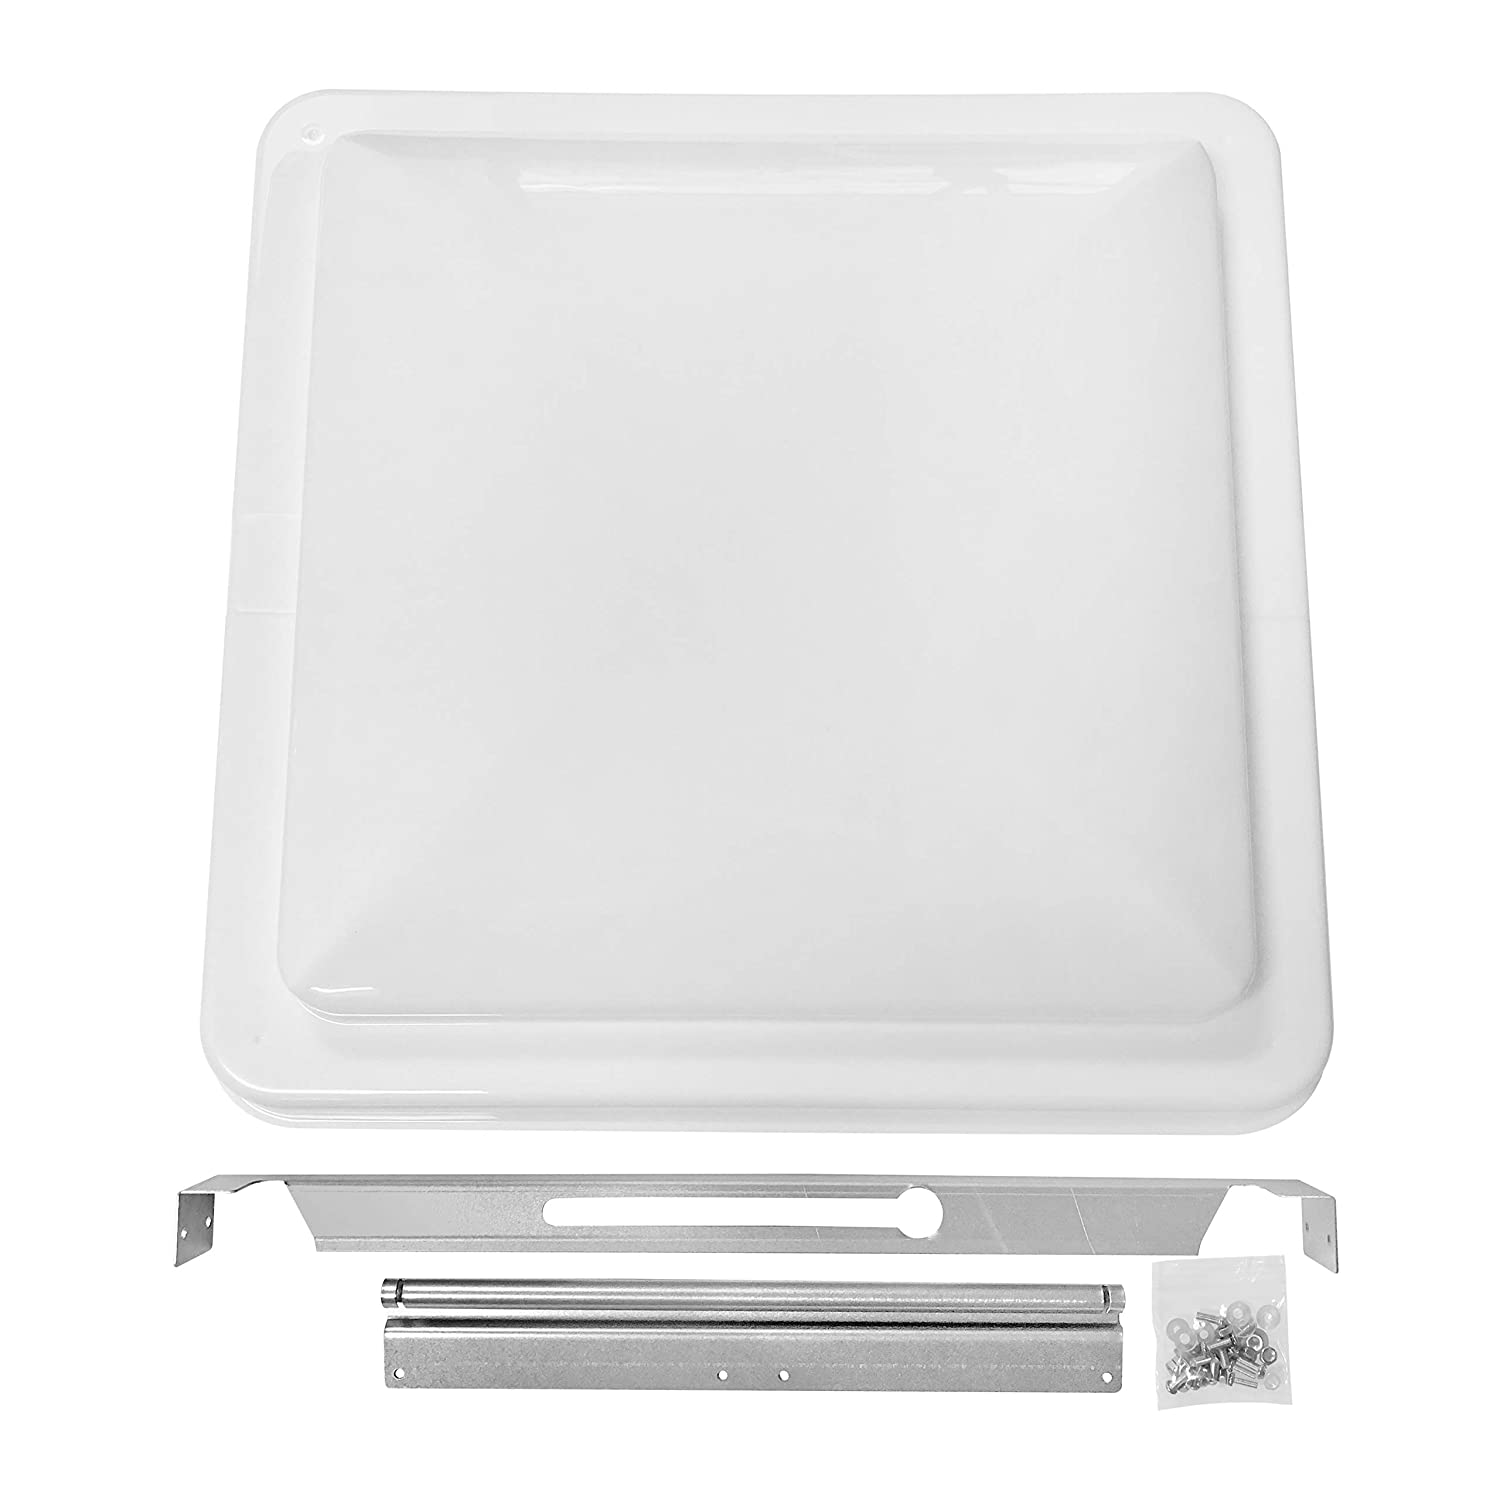 "Camp'N 14"" Universal RV, Trailer, Camper, Motorhome Roof Vent Cover - Vent Lid Replacement (White 1 Pack)"